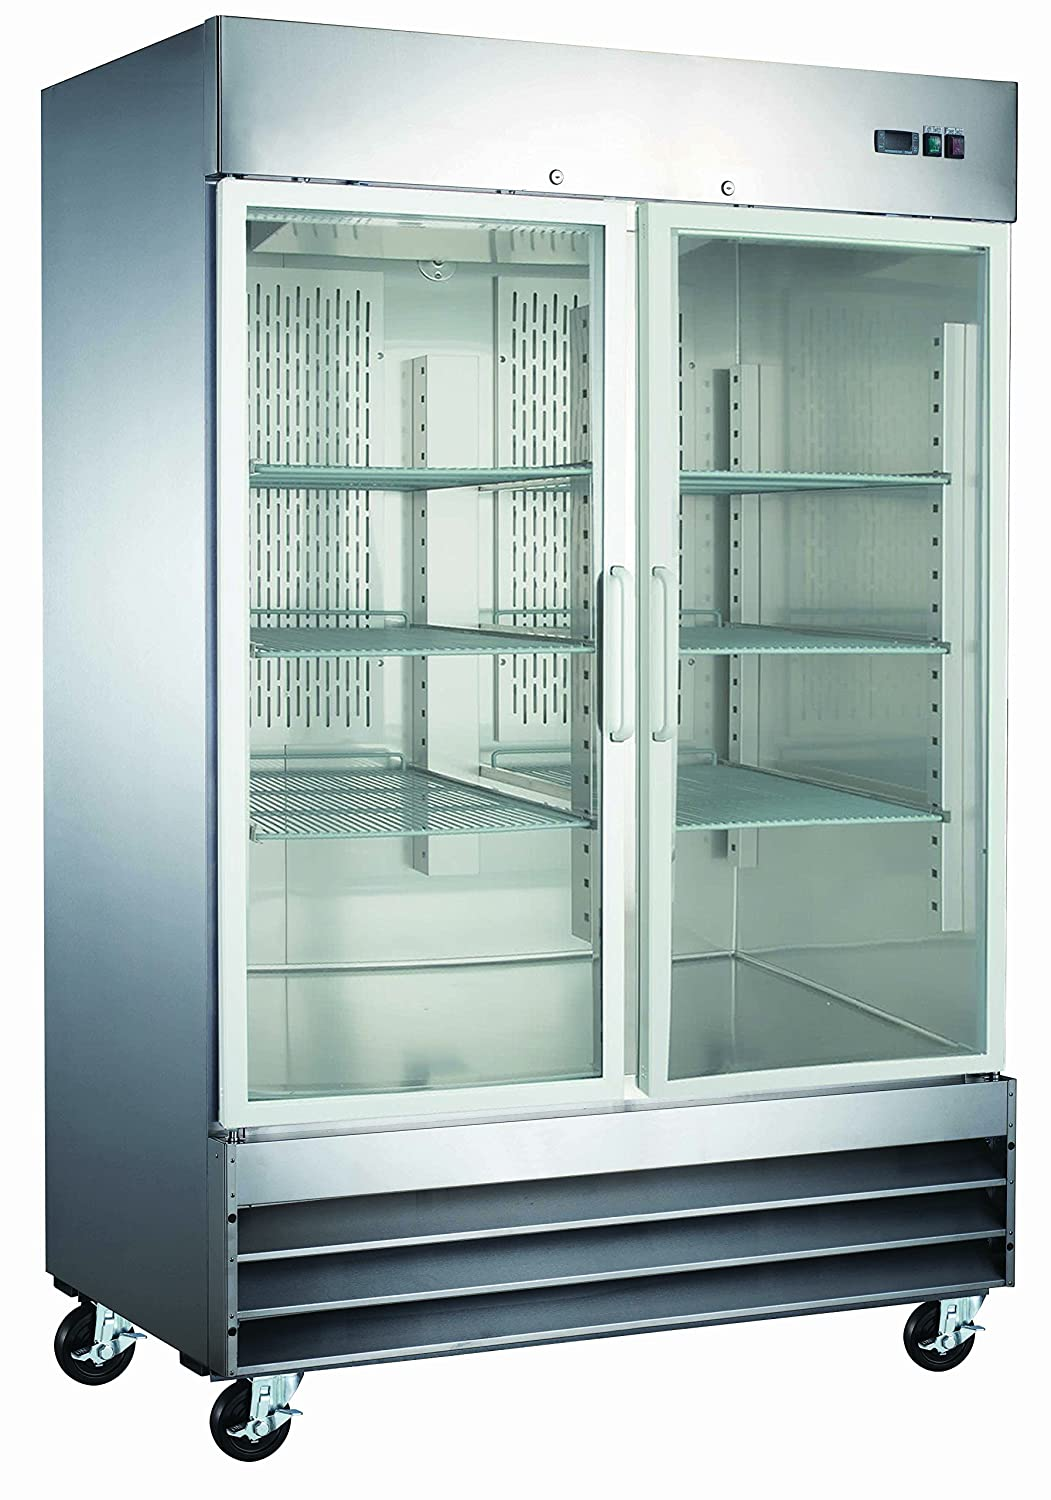 Two Door Glass Front Stainless Steel Commercial Refrigerator